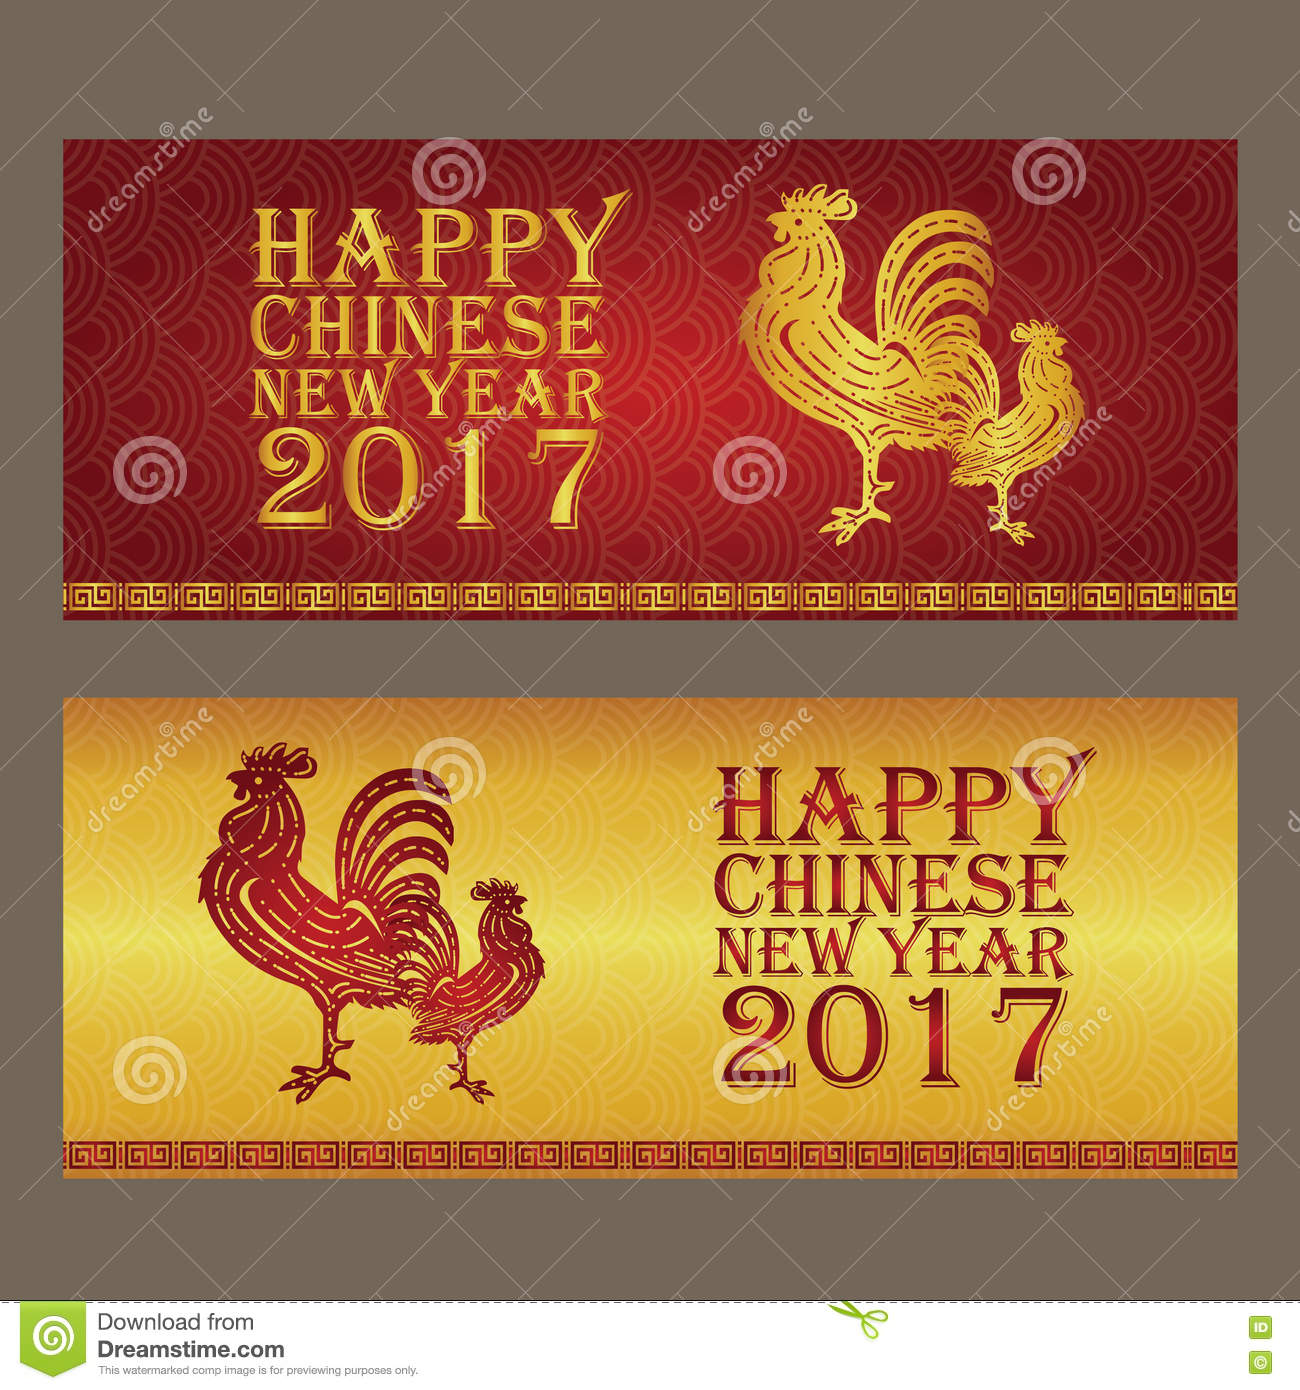 happy chinese new year 2017 the year banner and card design